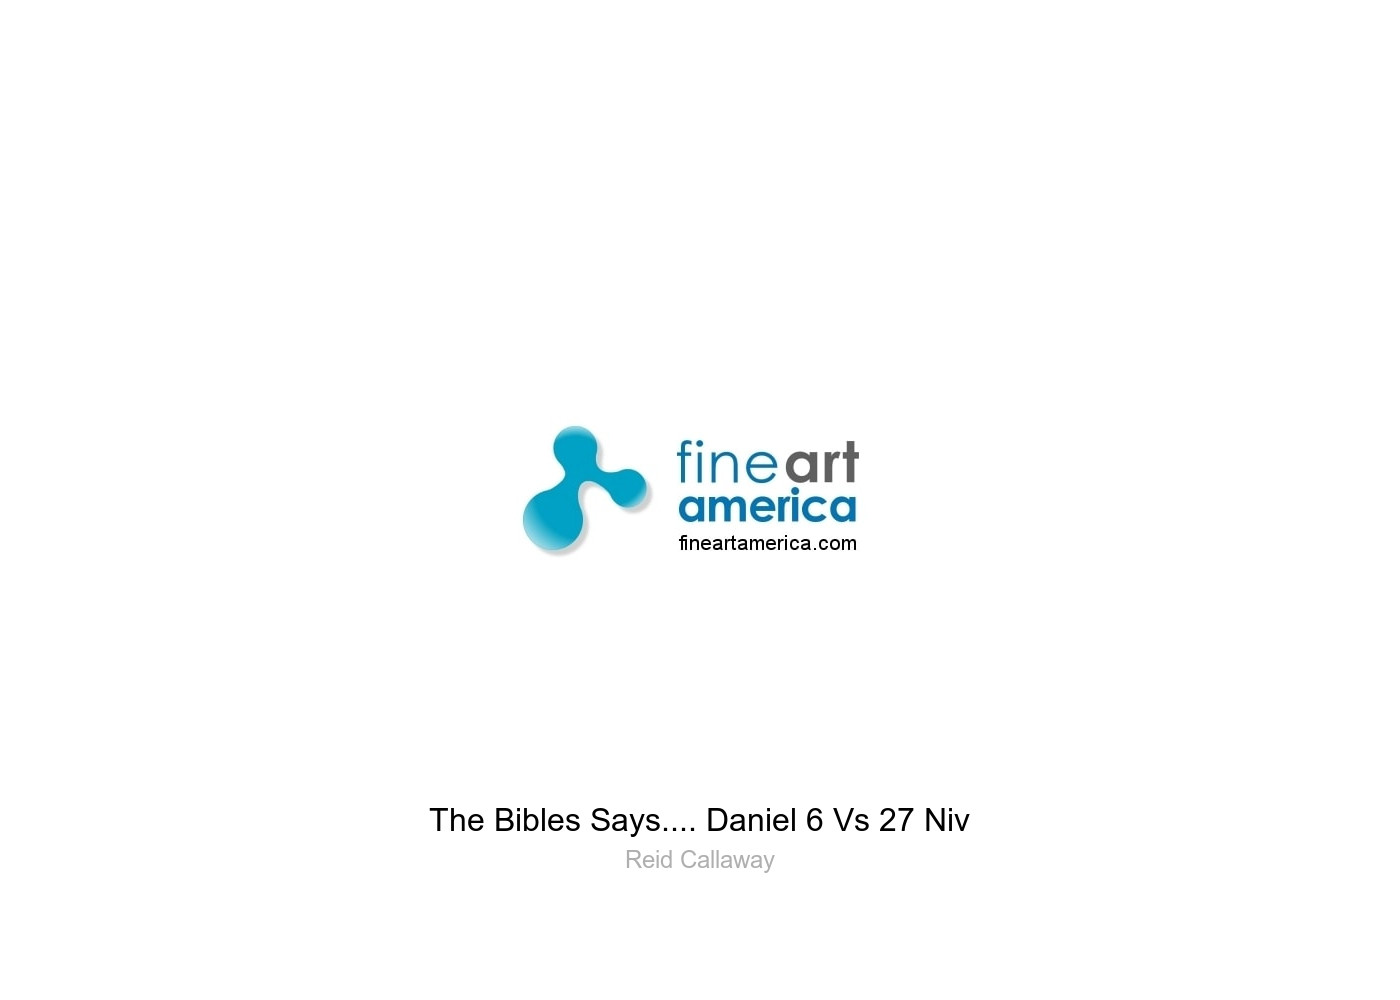 The Bibles Says     Daniel 6 Vs 27 Niv Greeting Card